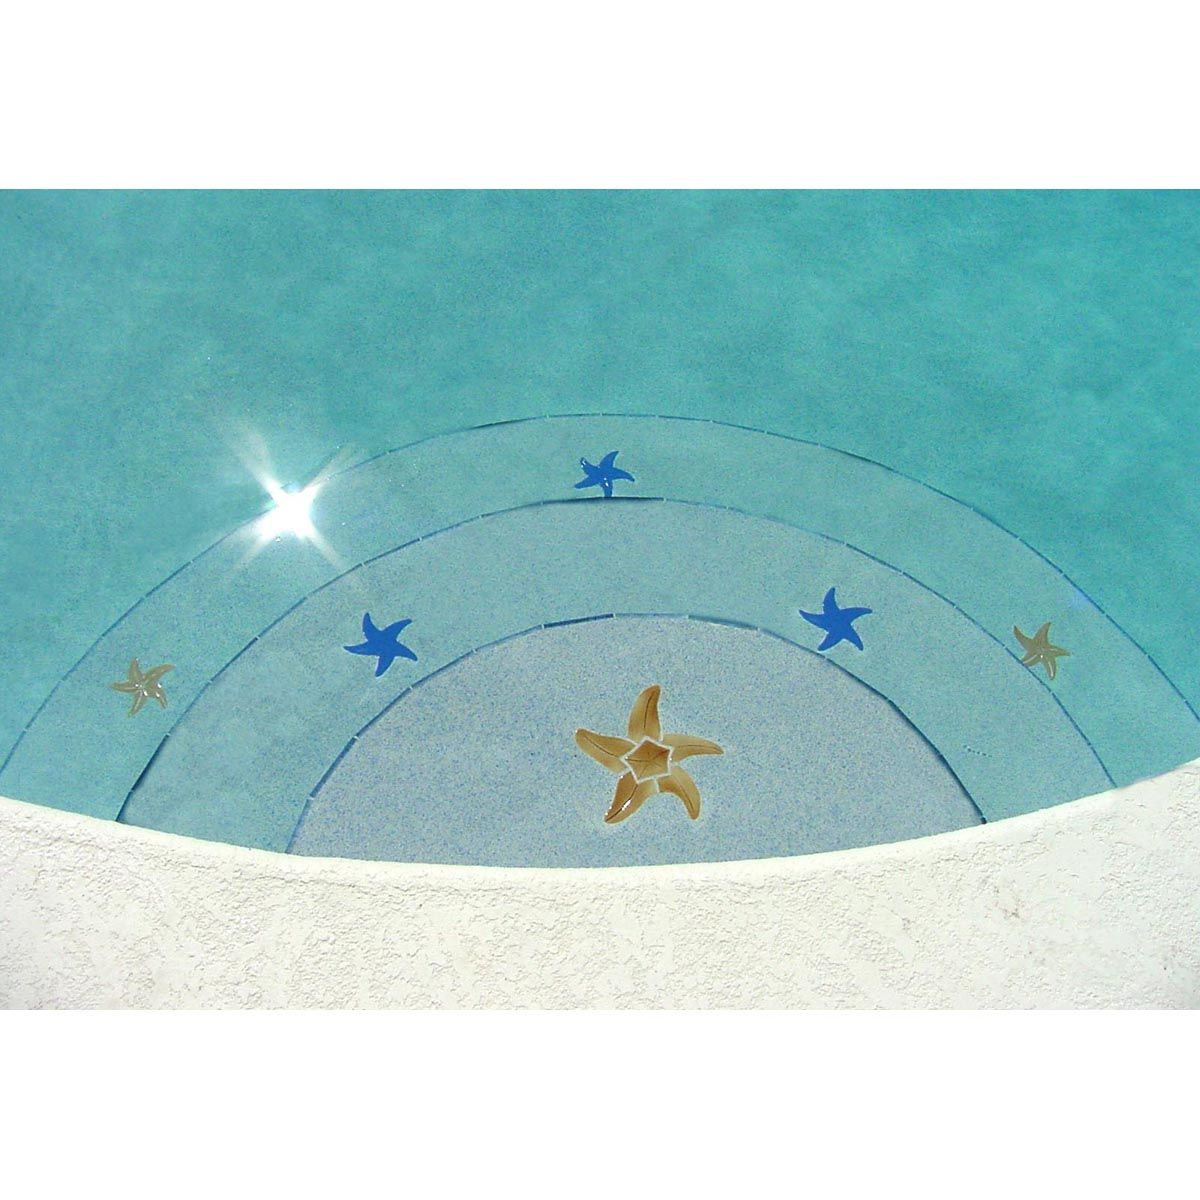 swimming pool mosaics - google search | pool tile ideas